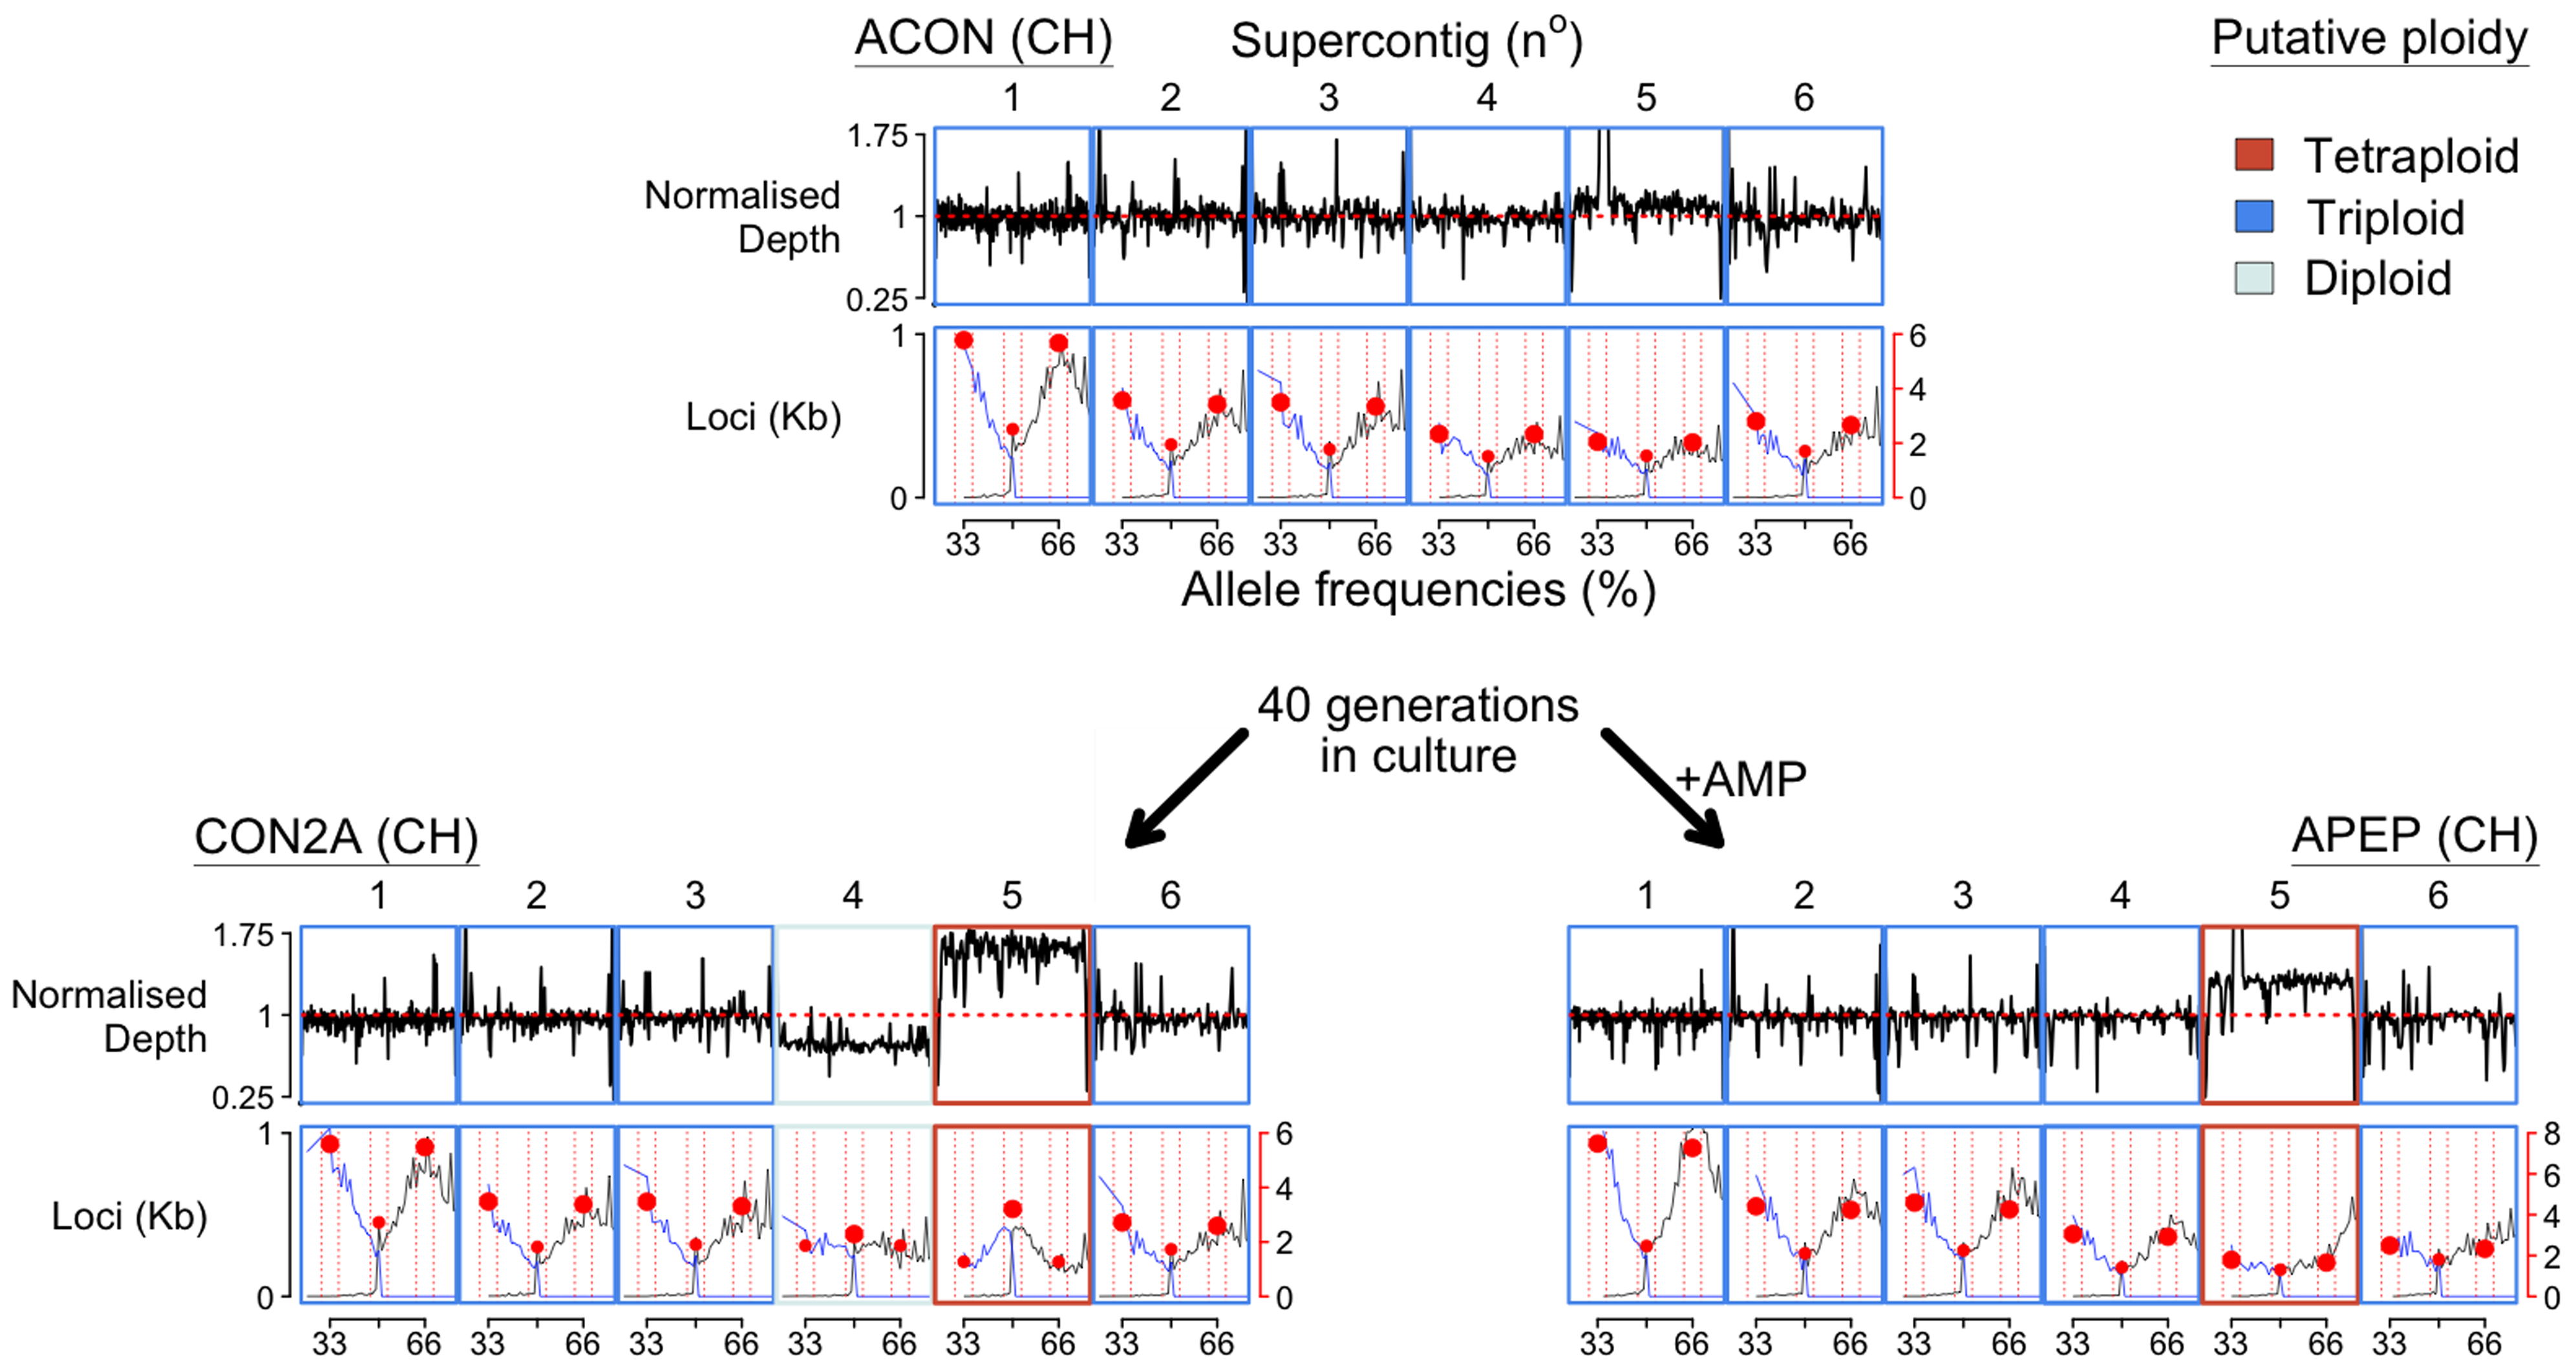 Chromosome copy number variation was identified across the three <i>Bd</i>CH isolates (ACON and its progenitors CON2A and APEP) following 40 generations in culture with or without the addition of anti-microbial peptides (AMP), respectively.